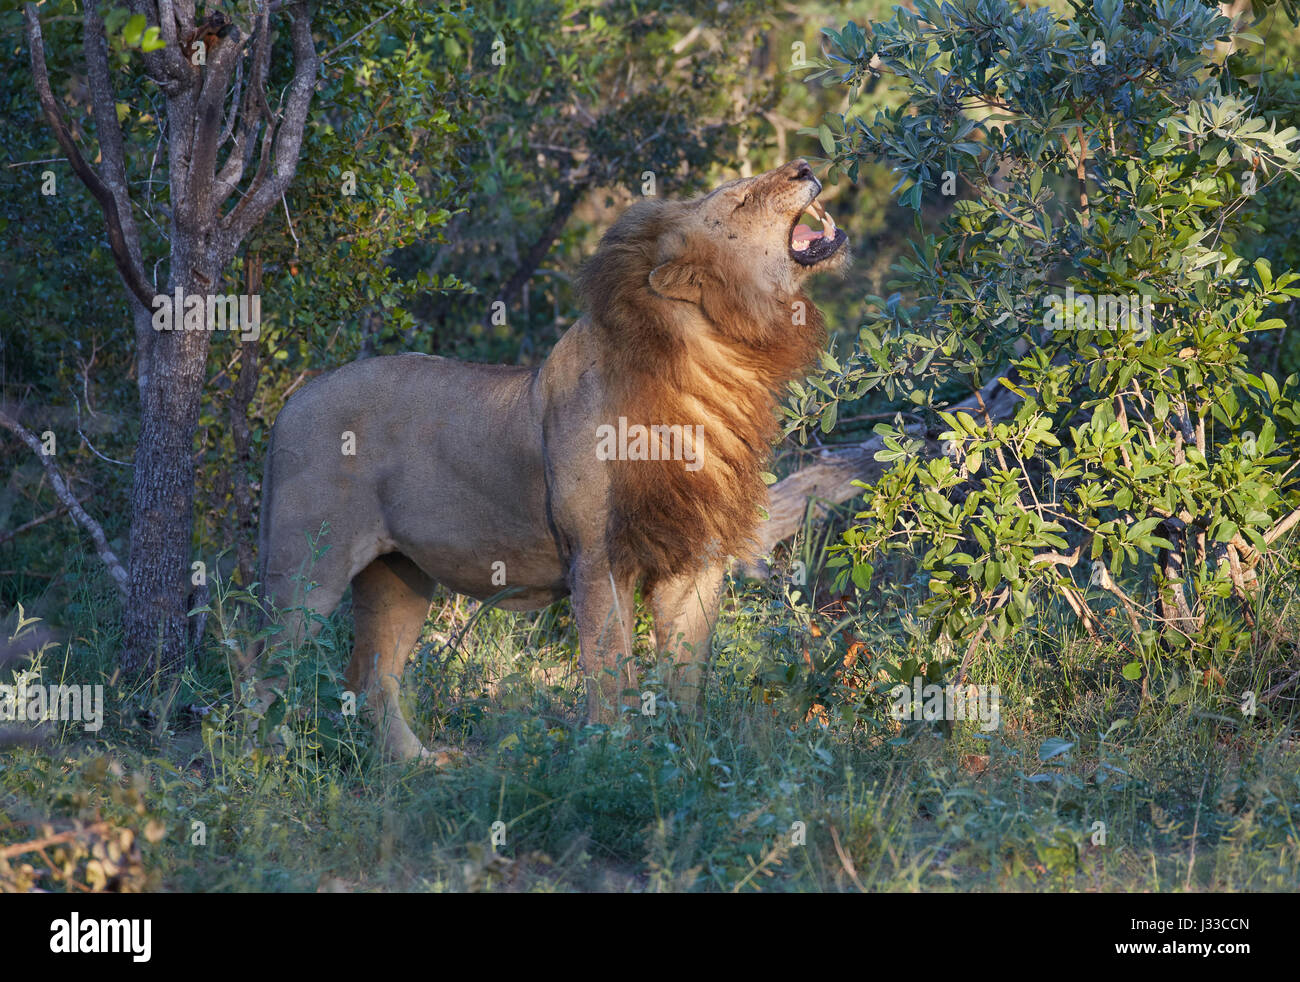 Lions roaring to other lions, Krueger National park, South Africa, Africa - Stock Image